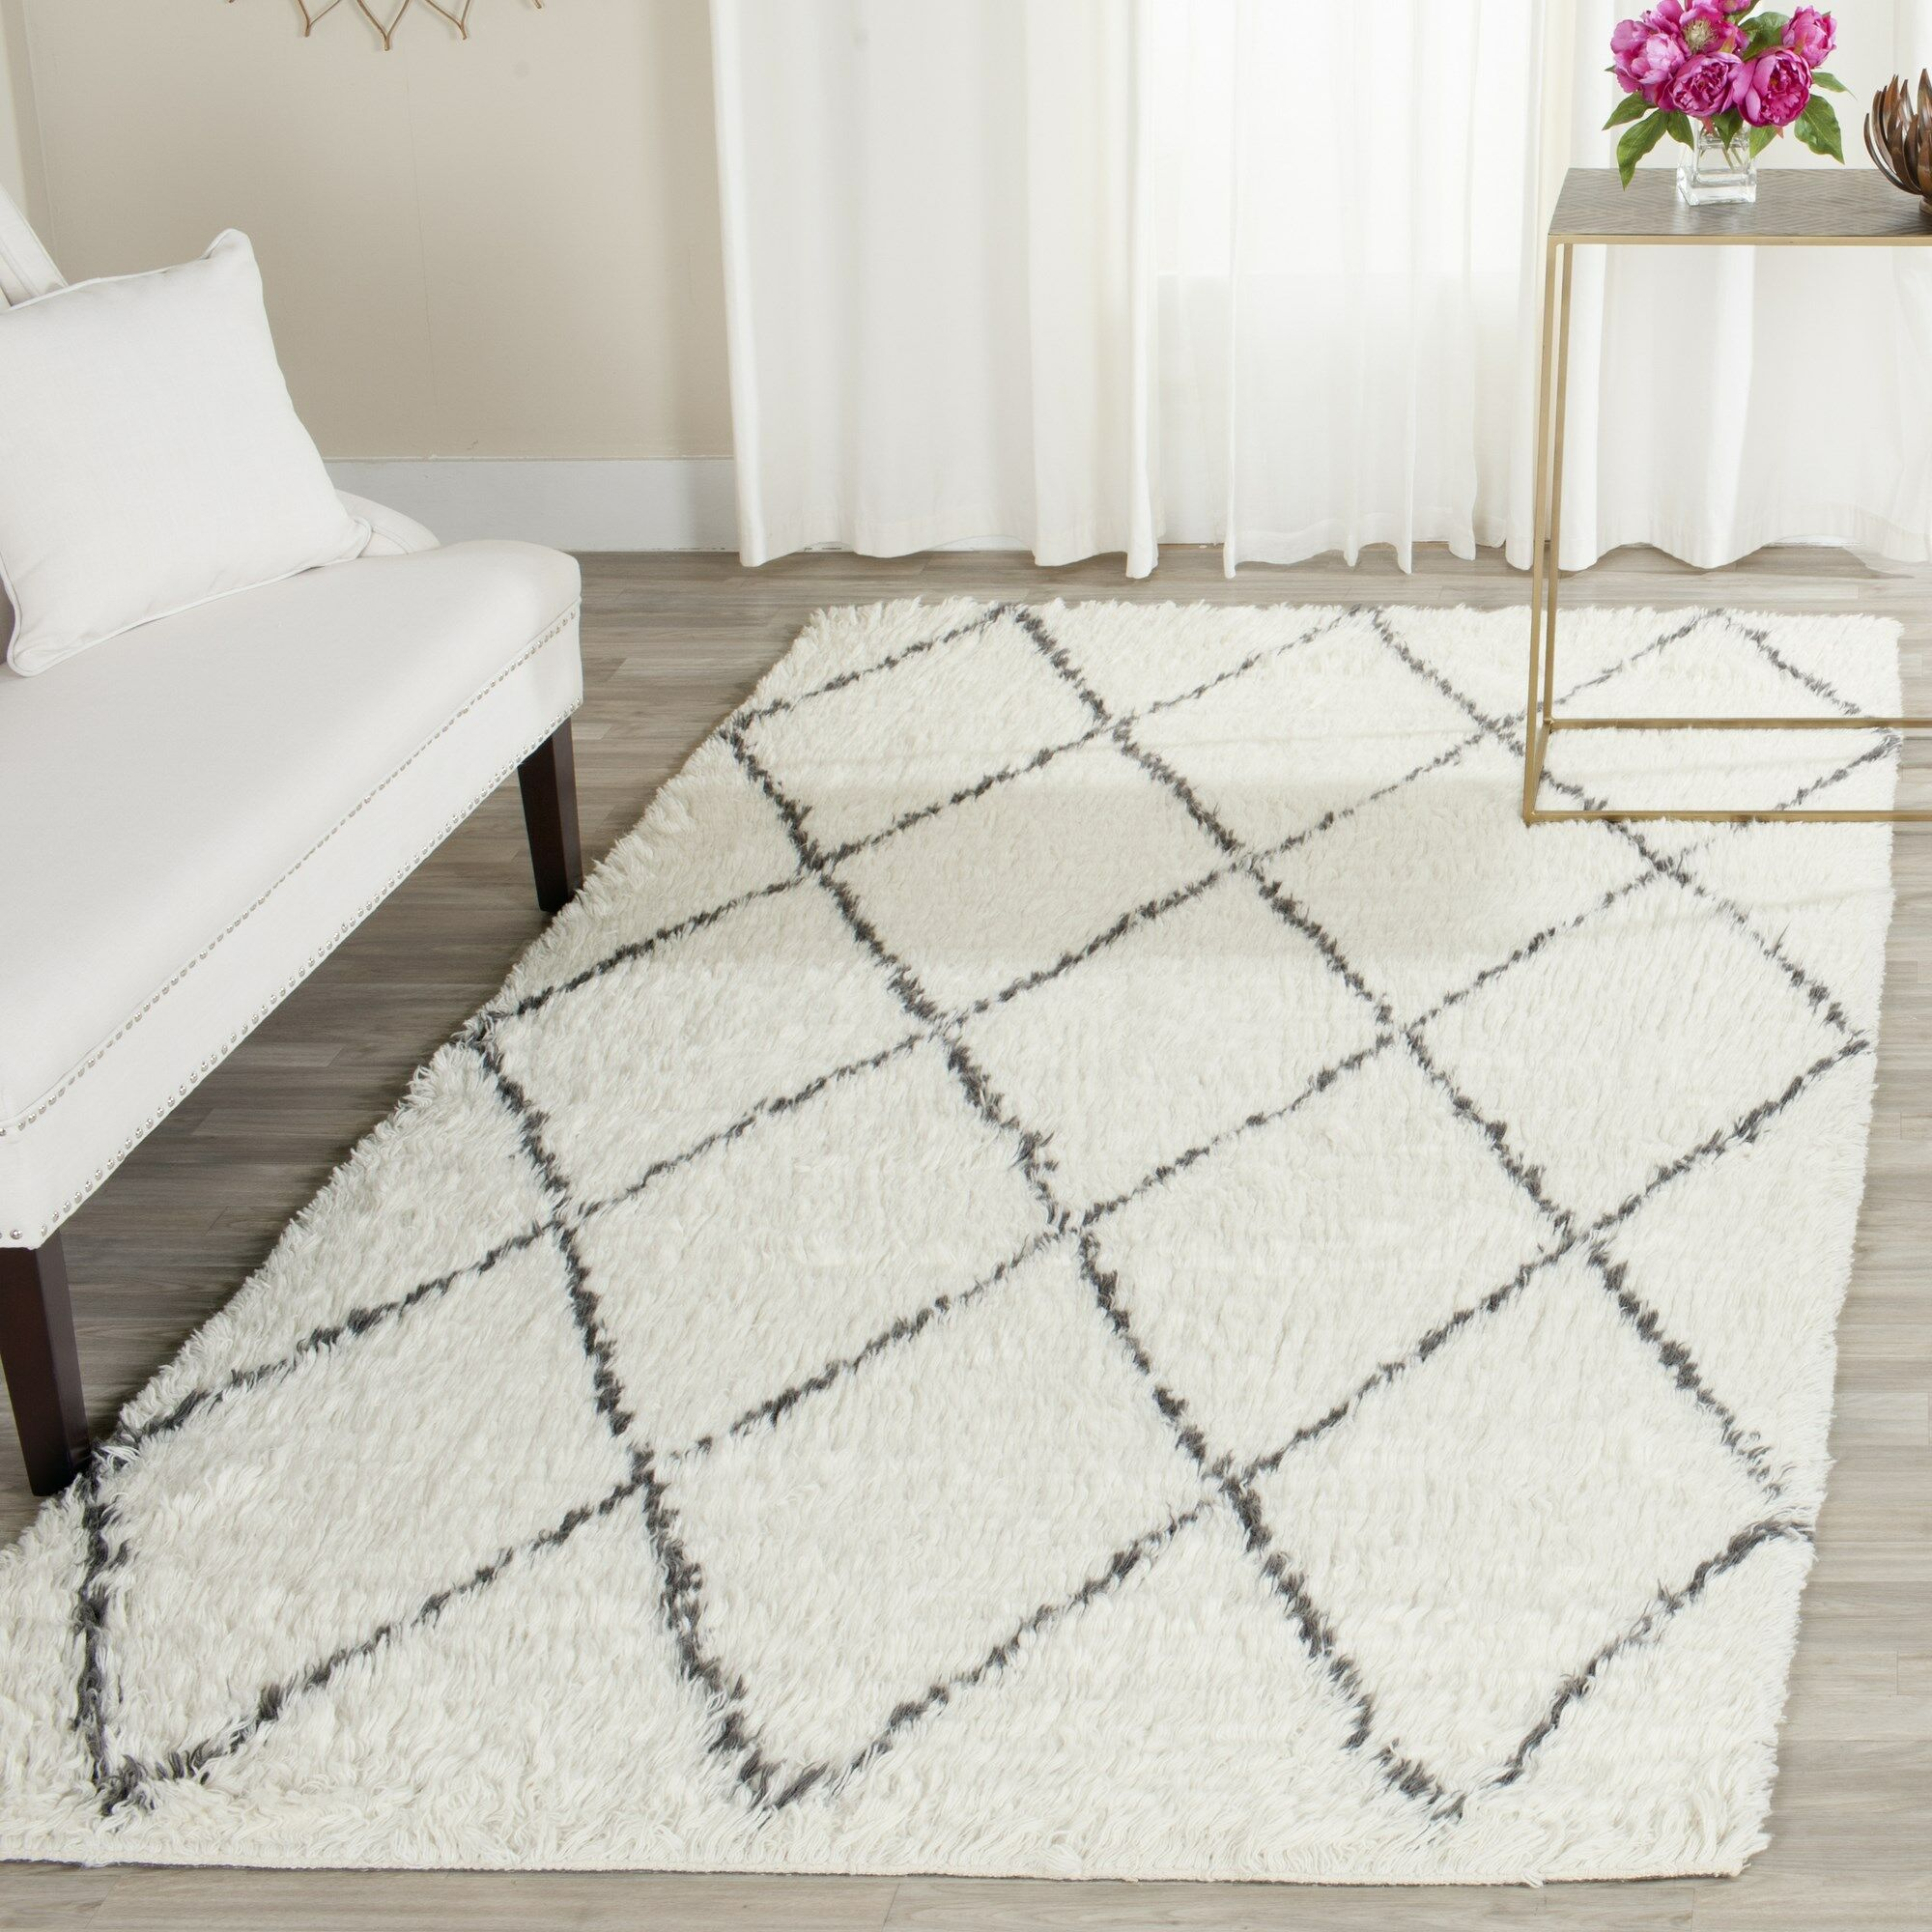 Lohan Knotted Cotton Ivory Area Rug Rug Size: Rectangle 8' x 10'